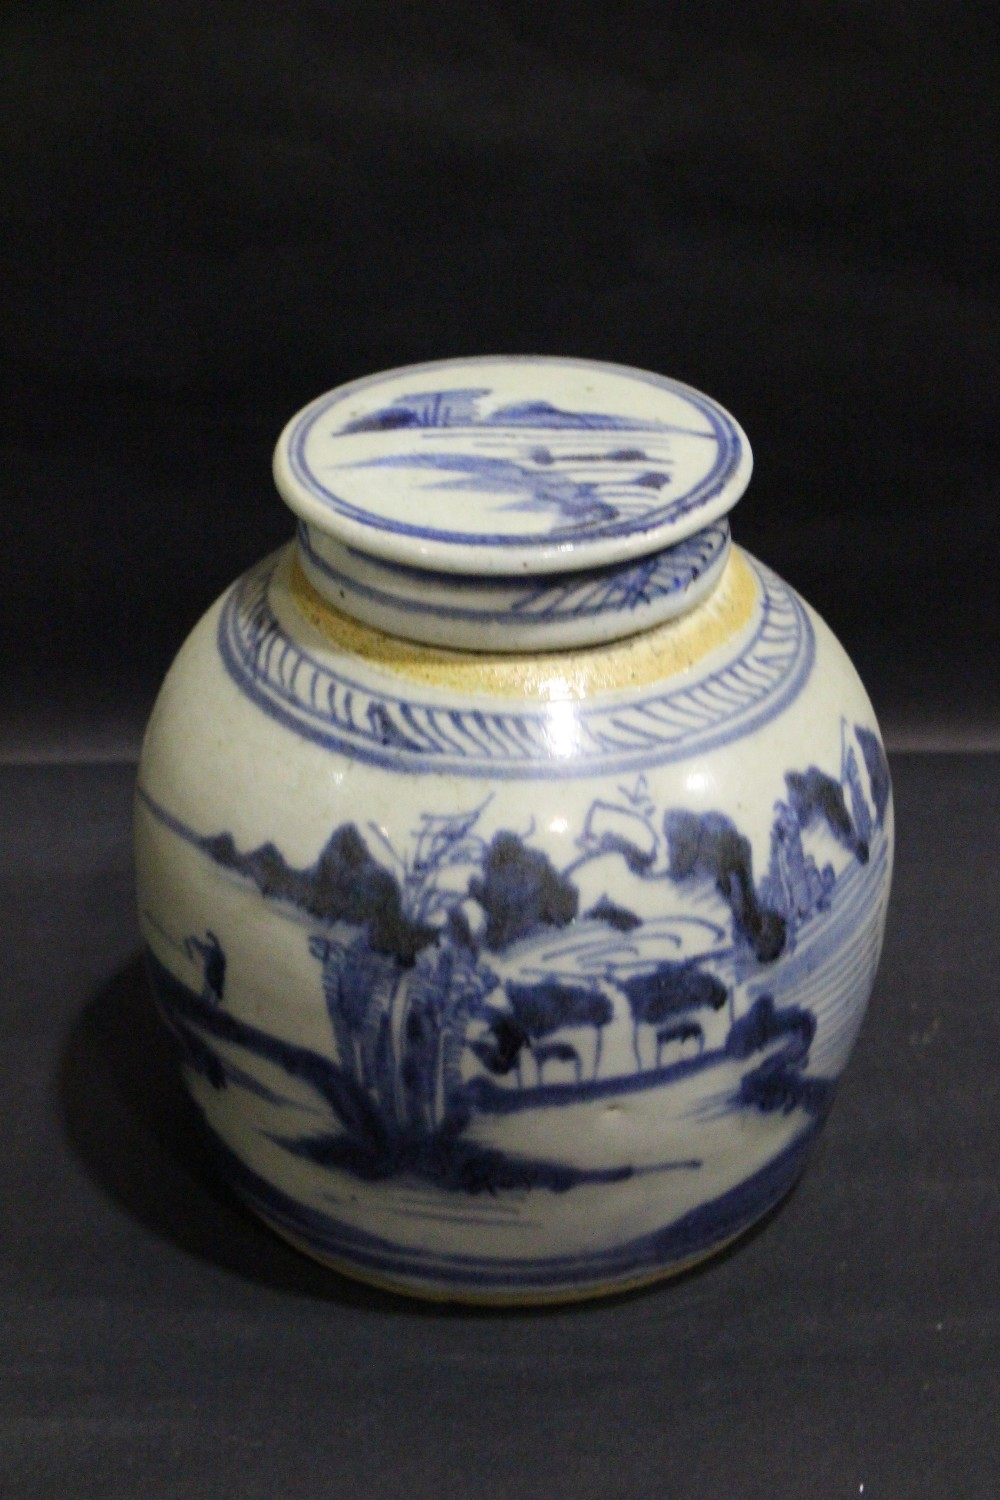 Lot 58 - A BLUE & WHITE GINGER JAR, with lid, images of a figure standing by water, with a landscape, in